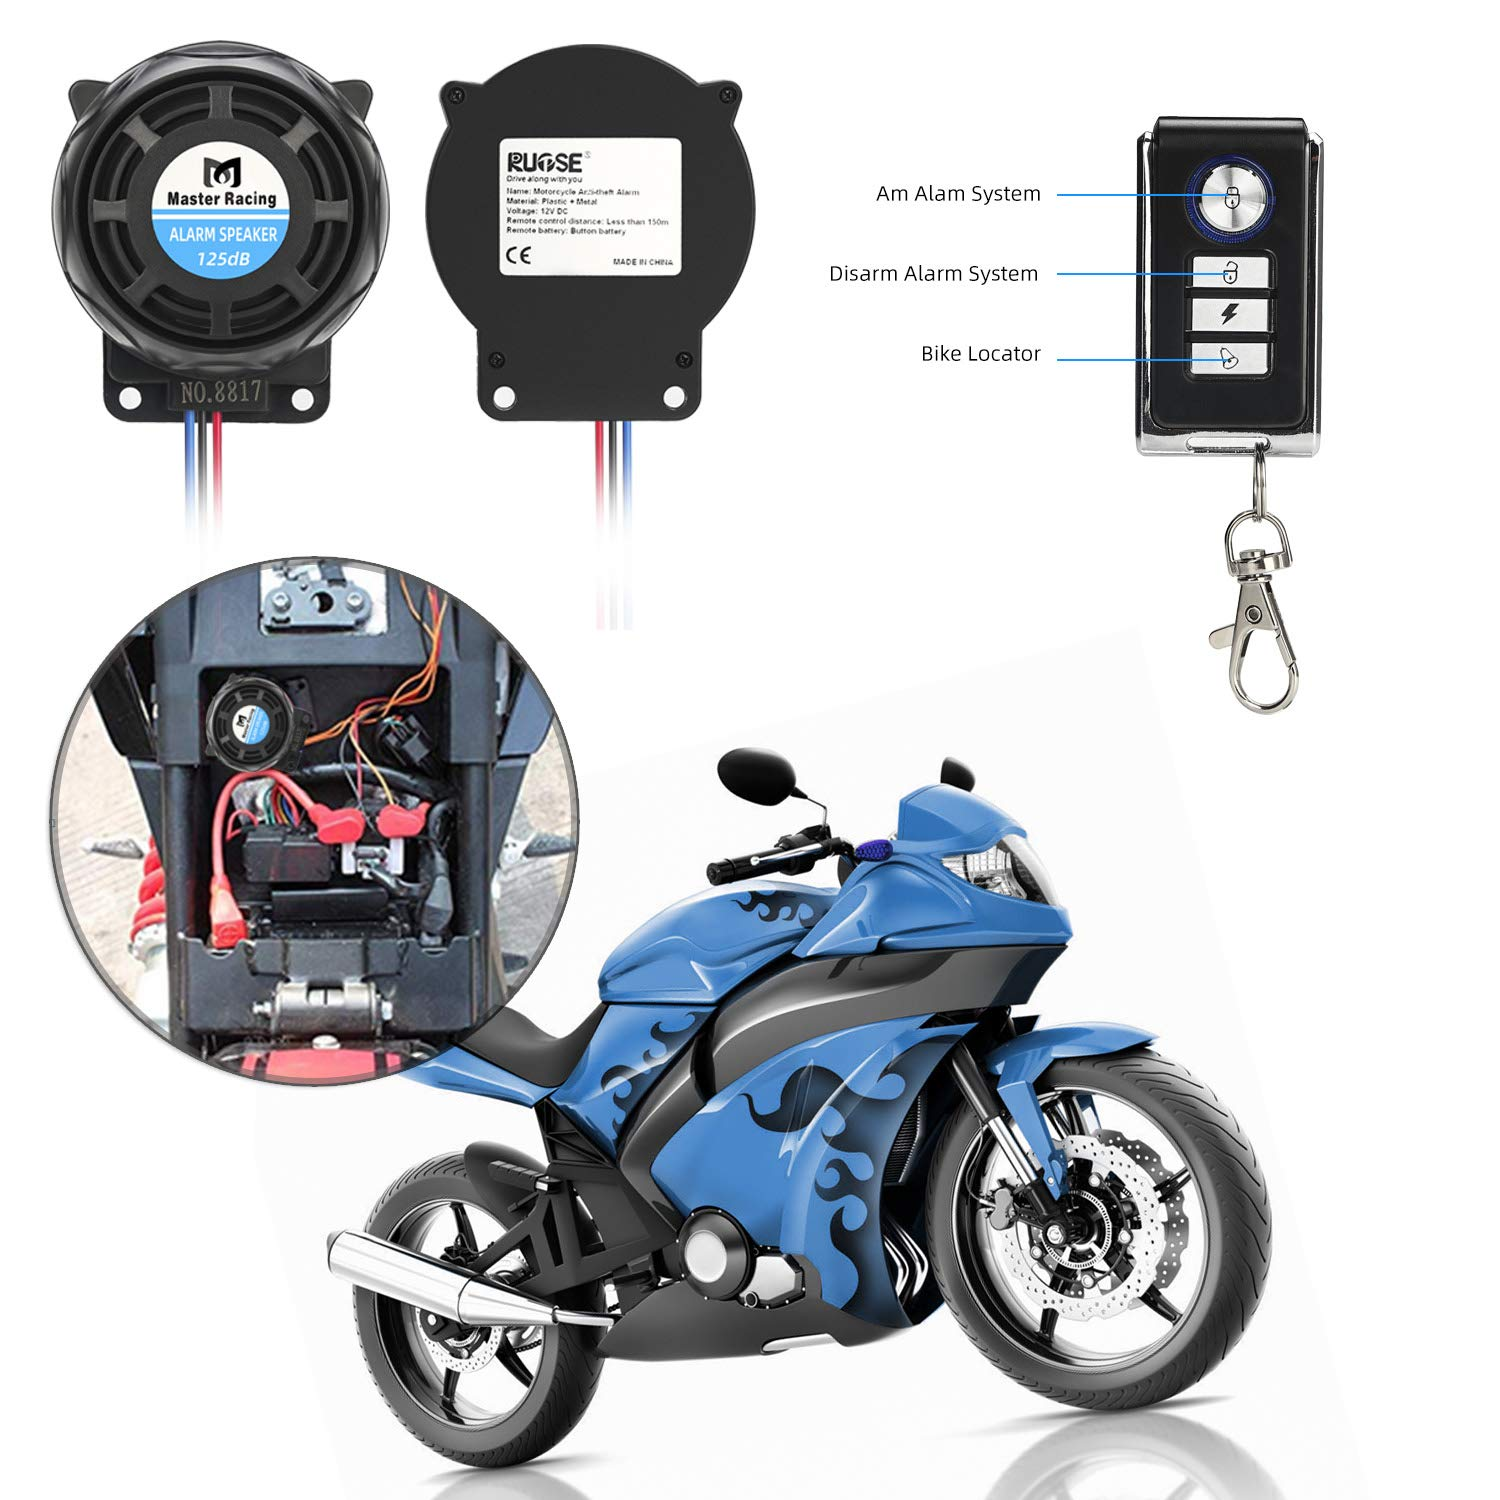 Rupse Wireless Alarm System Motorcycle Bicycle Bike Anti Theft Security Burglar Double Remote Control Warner Horn Adjustable Sensitivity